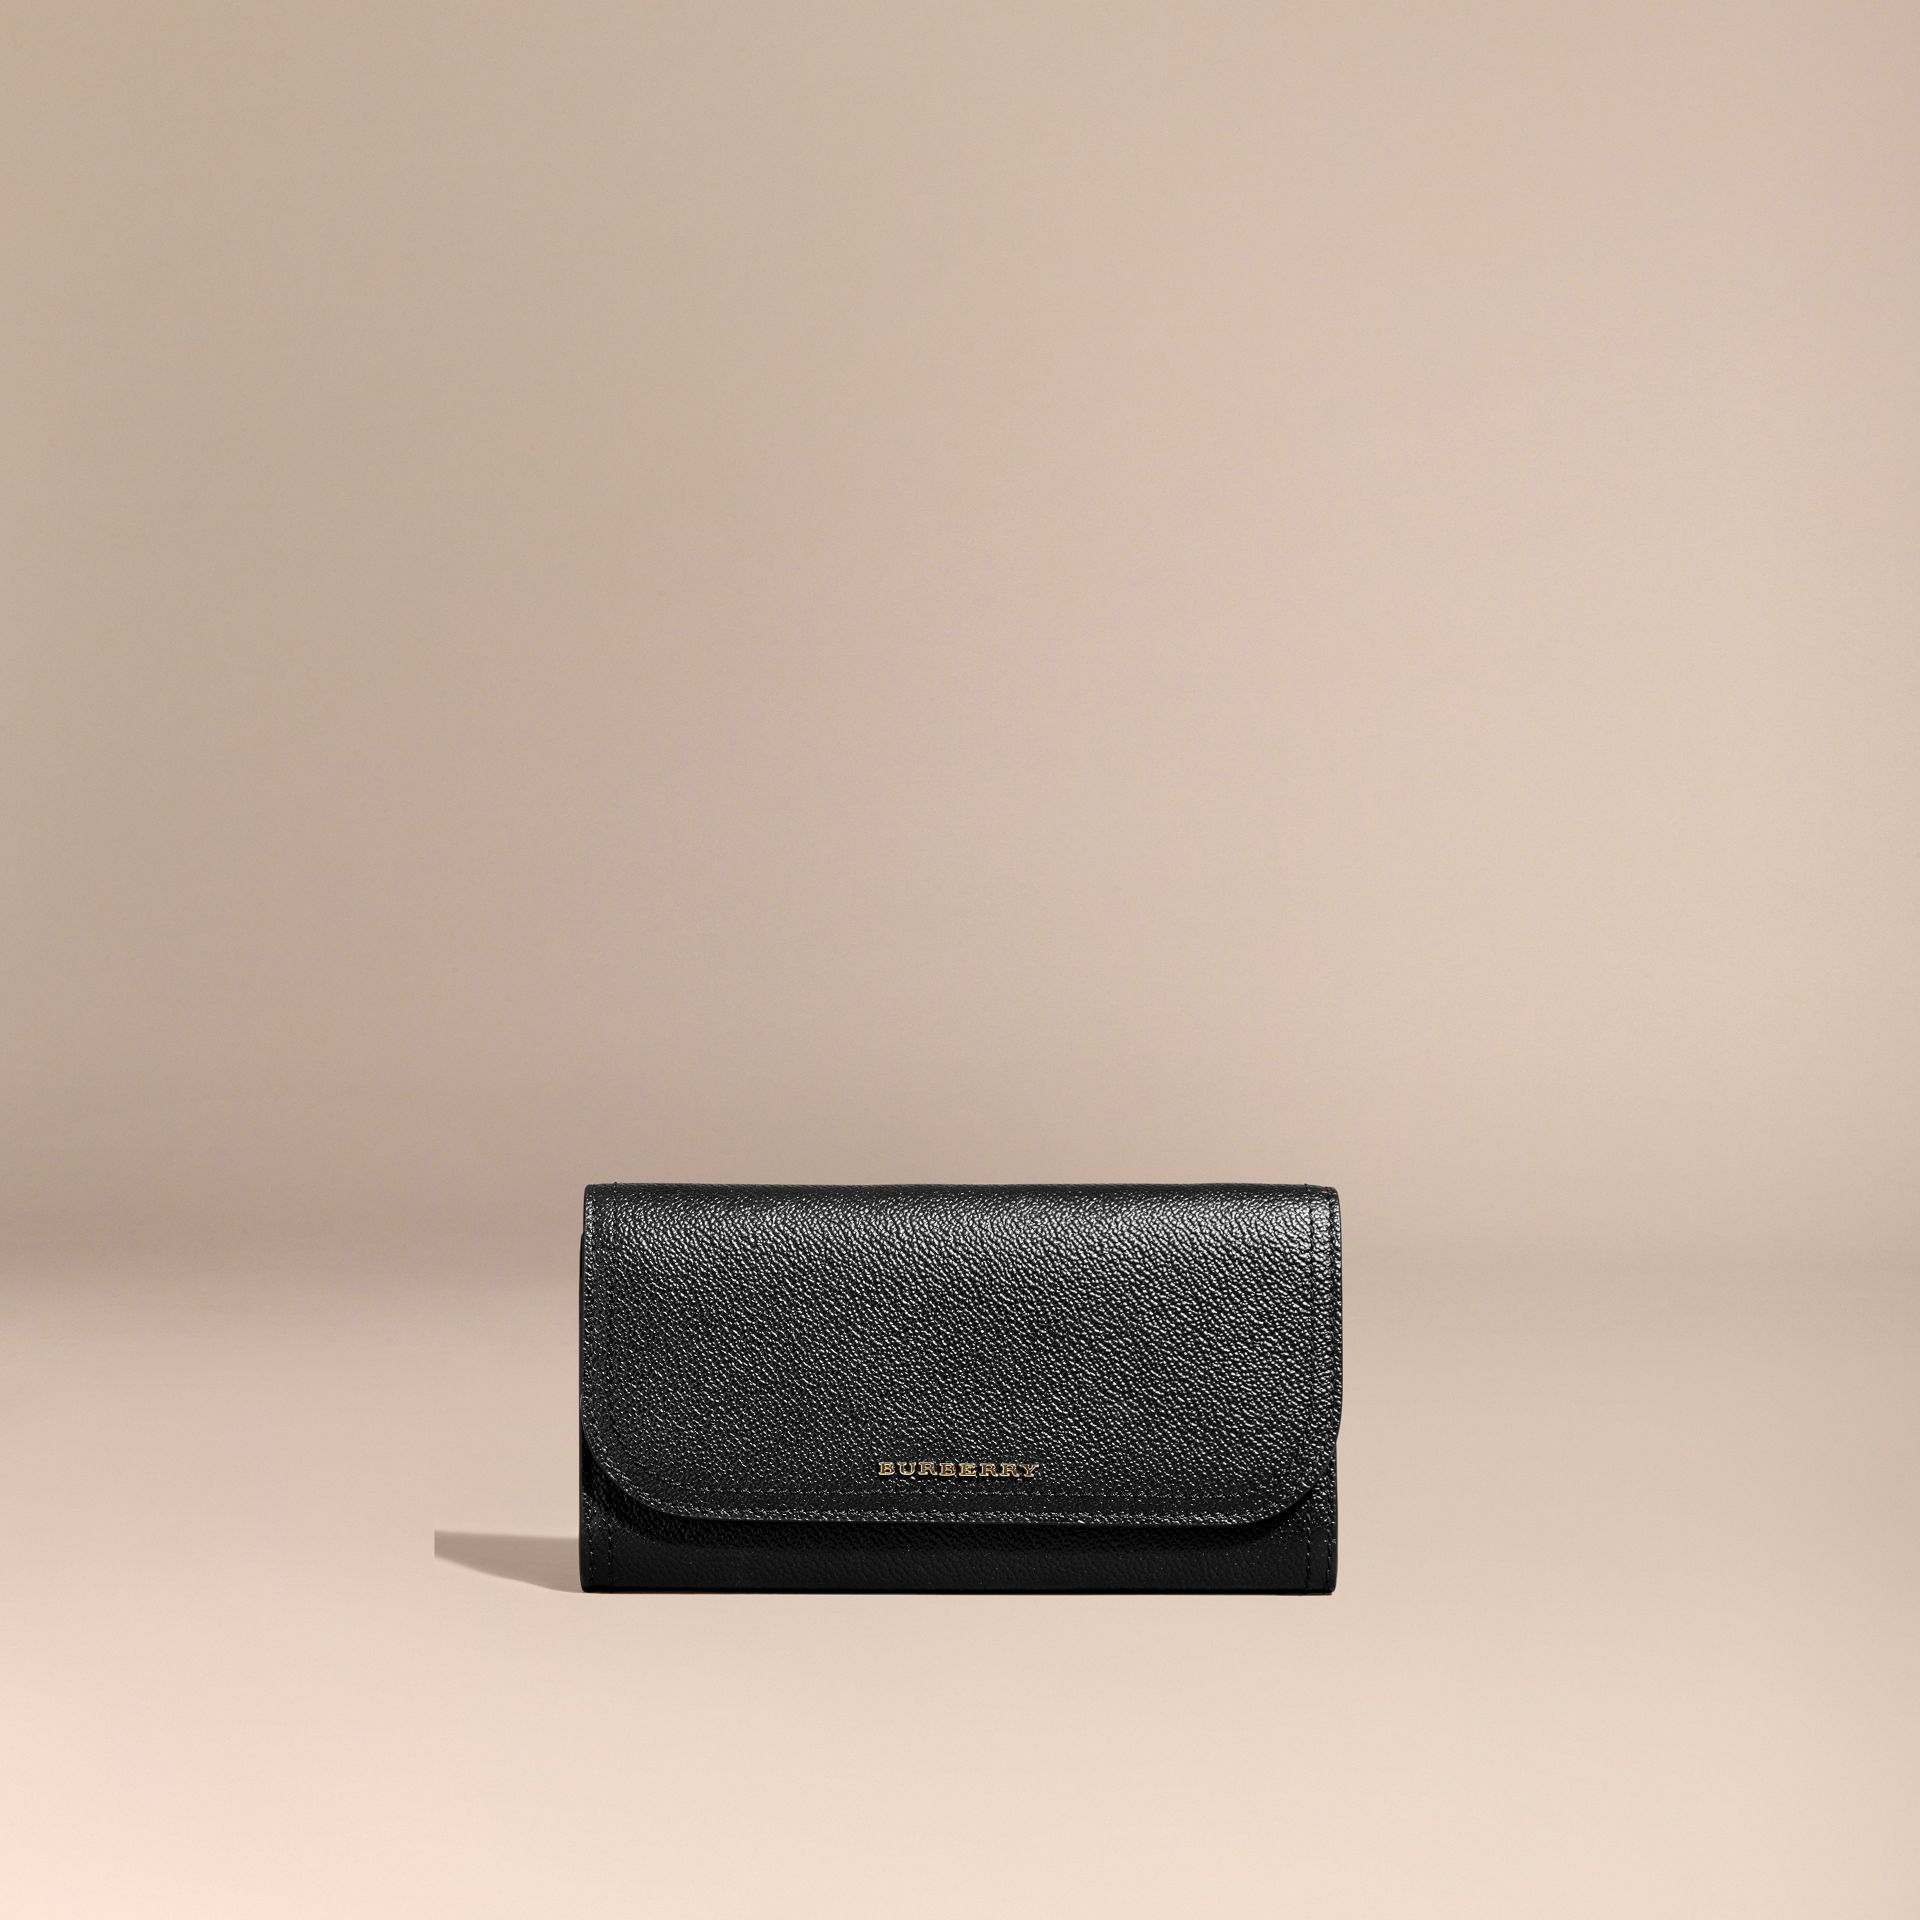 Grainy Leather Slim Continental Wallet in Black - Women | Burberry - gallery image 7